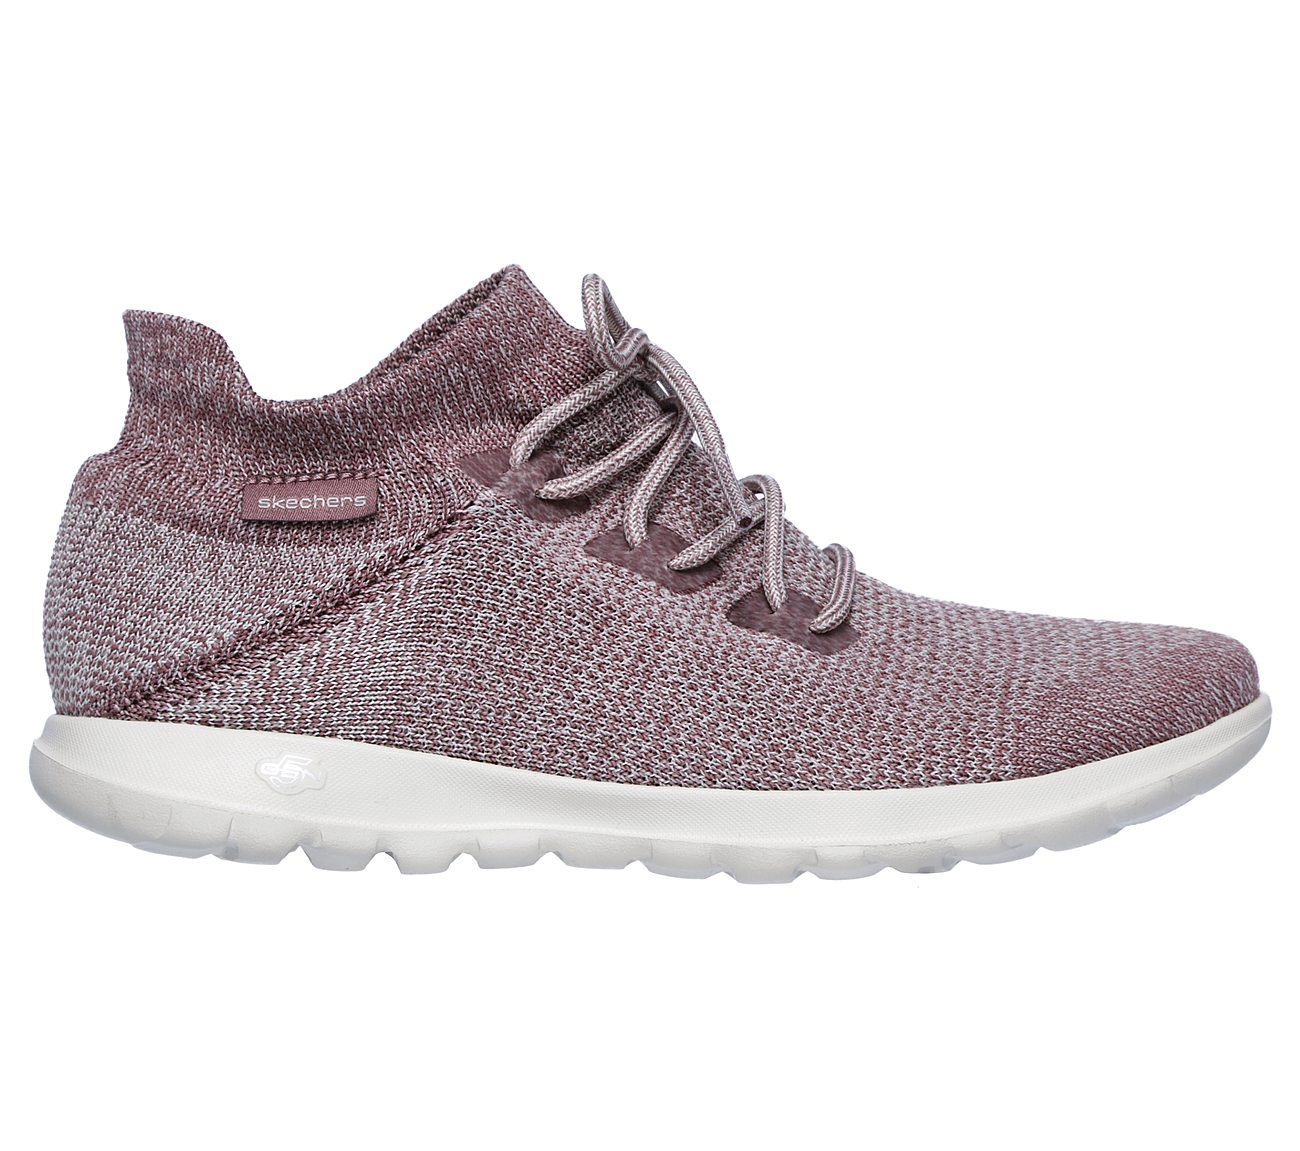 Skechers Women's Go Walk Lite-15375 Sneaker - Choose SZ/Color